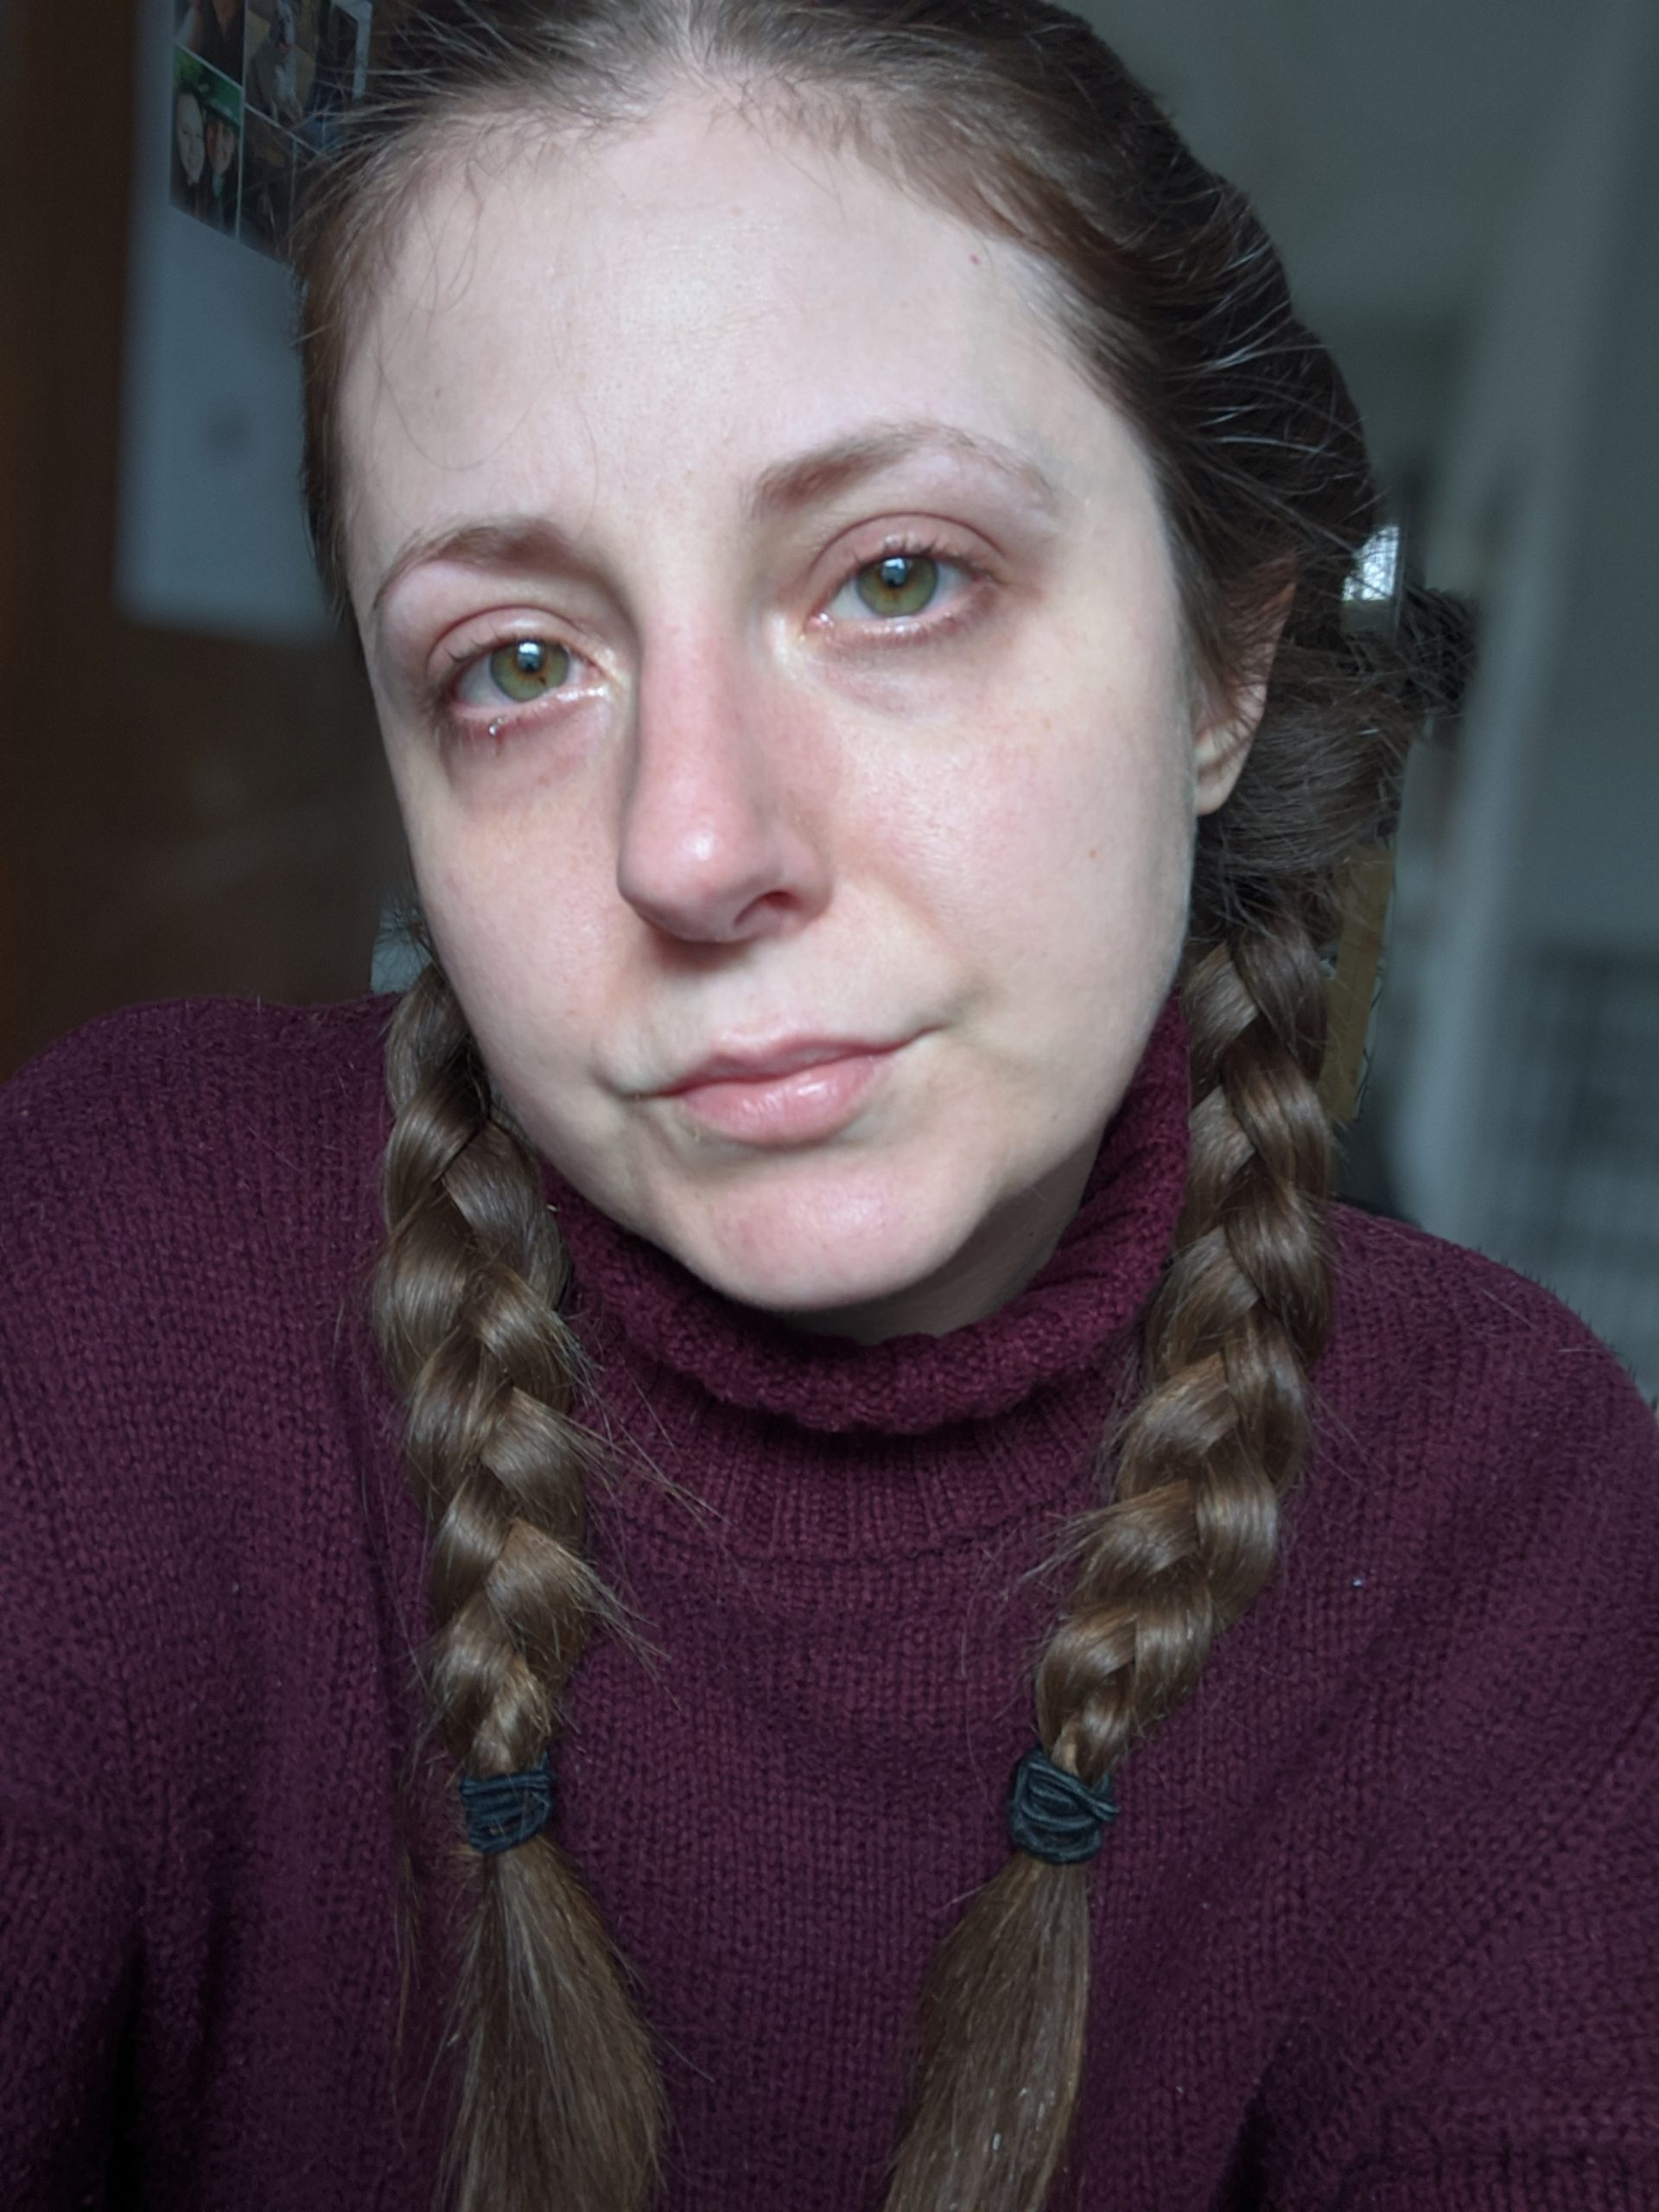 Brianna McInerny wearing a burgundy turtle neck with her hair in braids, with tears in her red eyes.